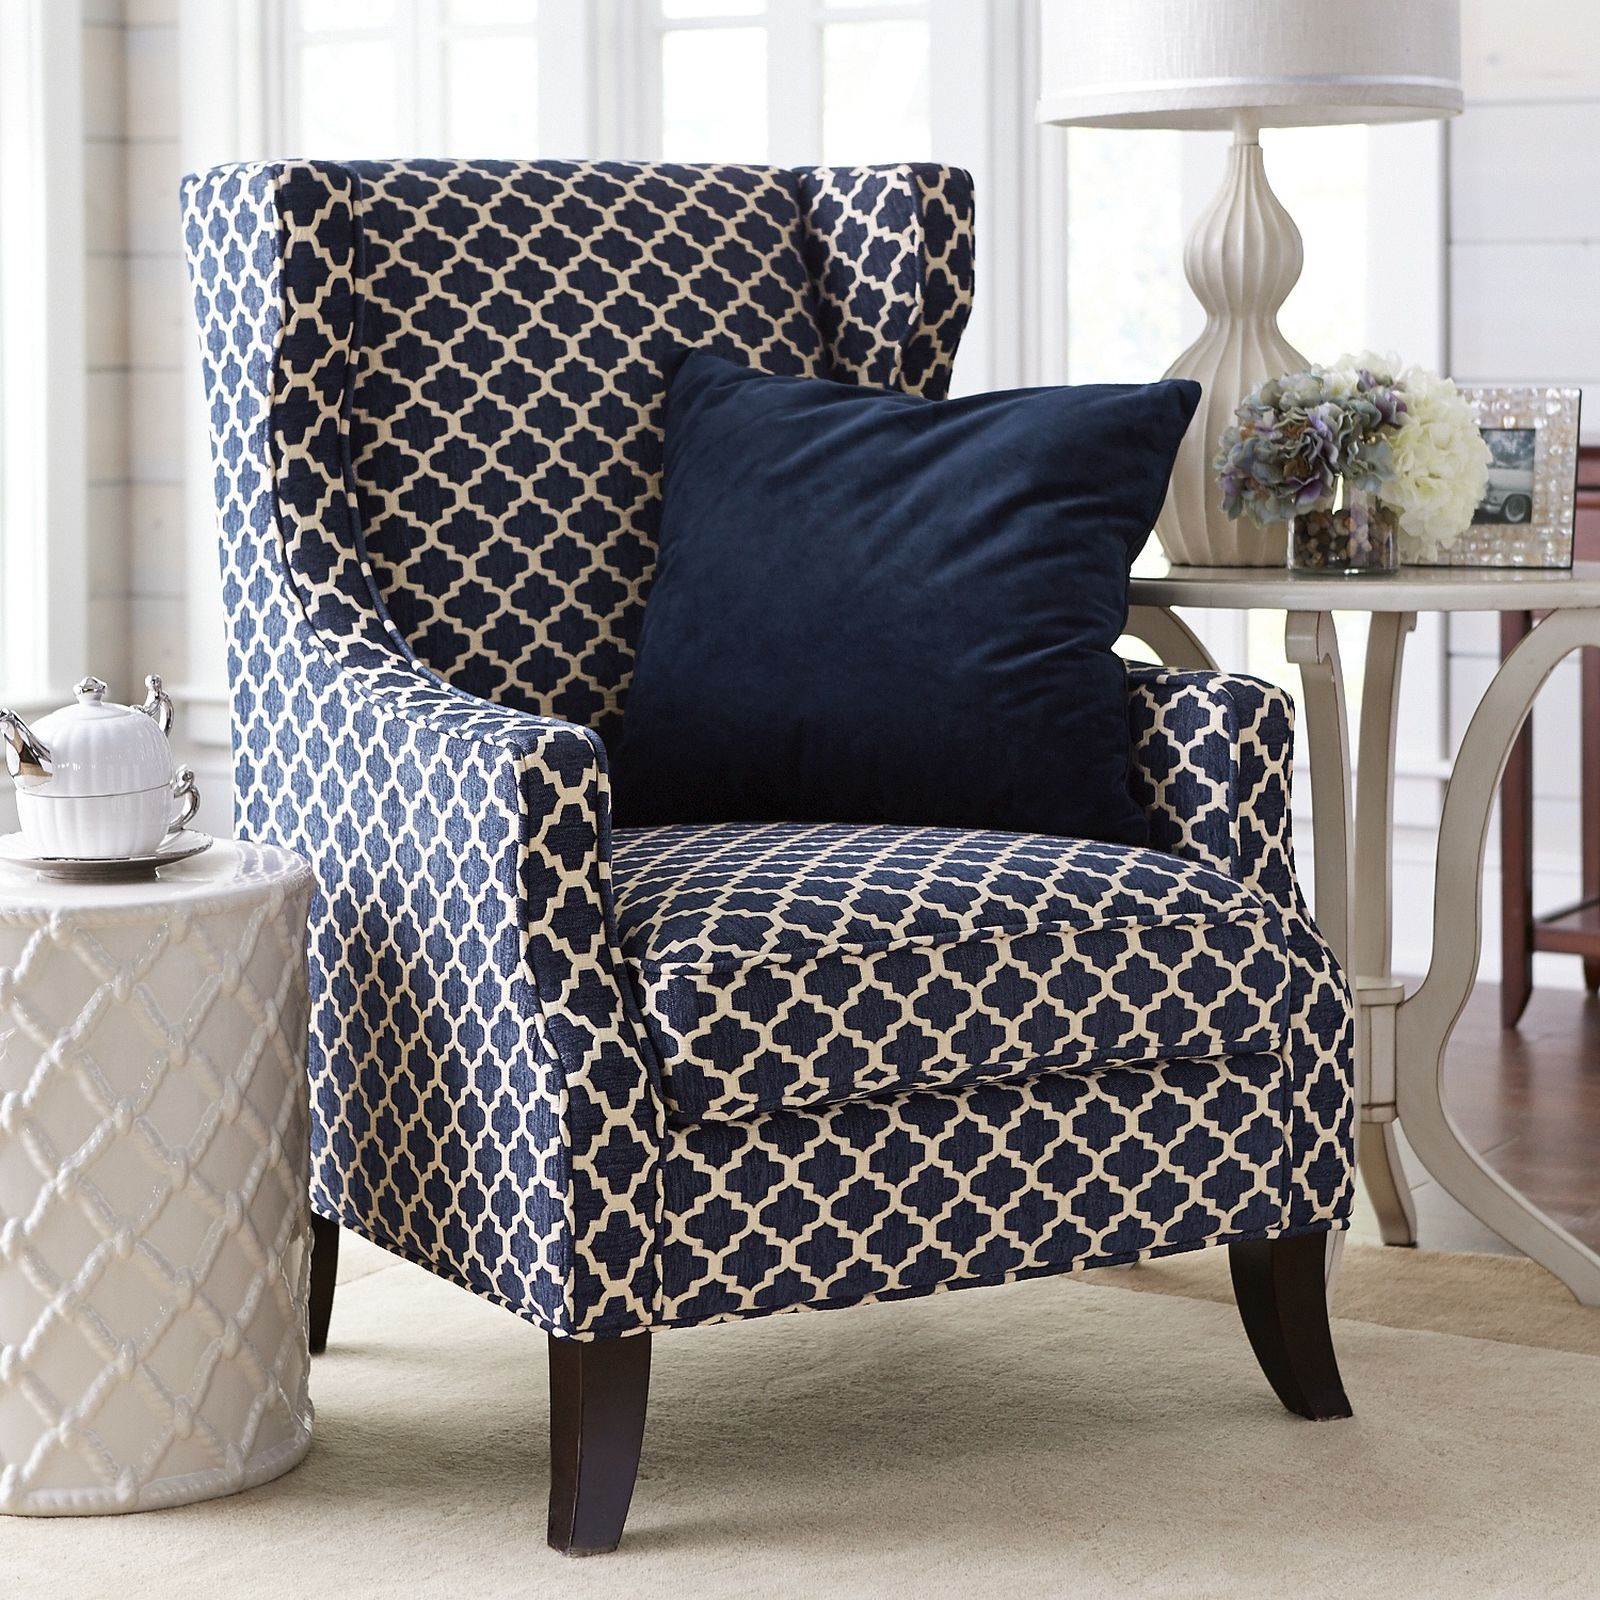 Navy Blue Wingback Chairs How To Adjust Aeron Chair Trellis Wing Central Heating